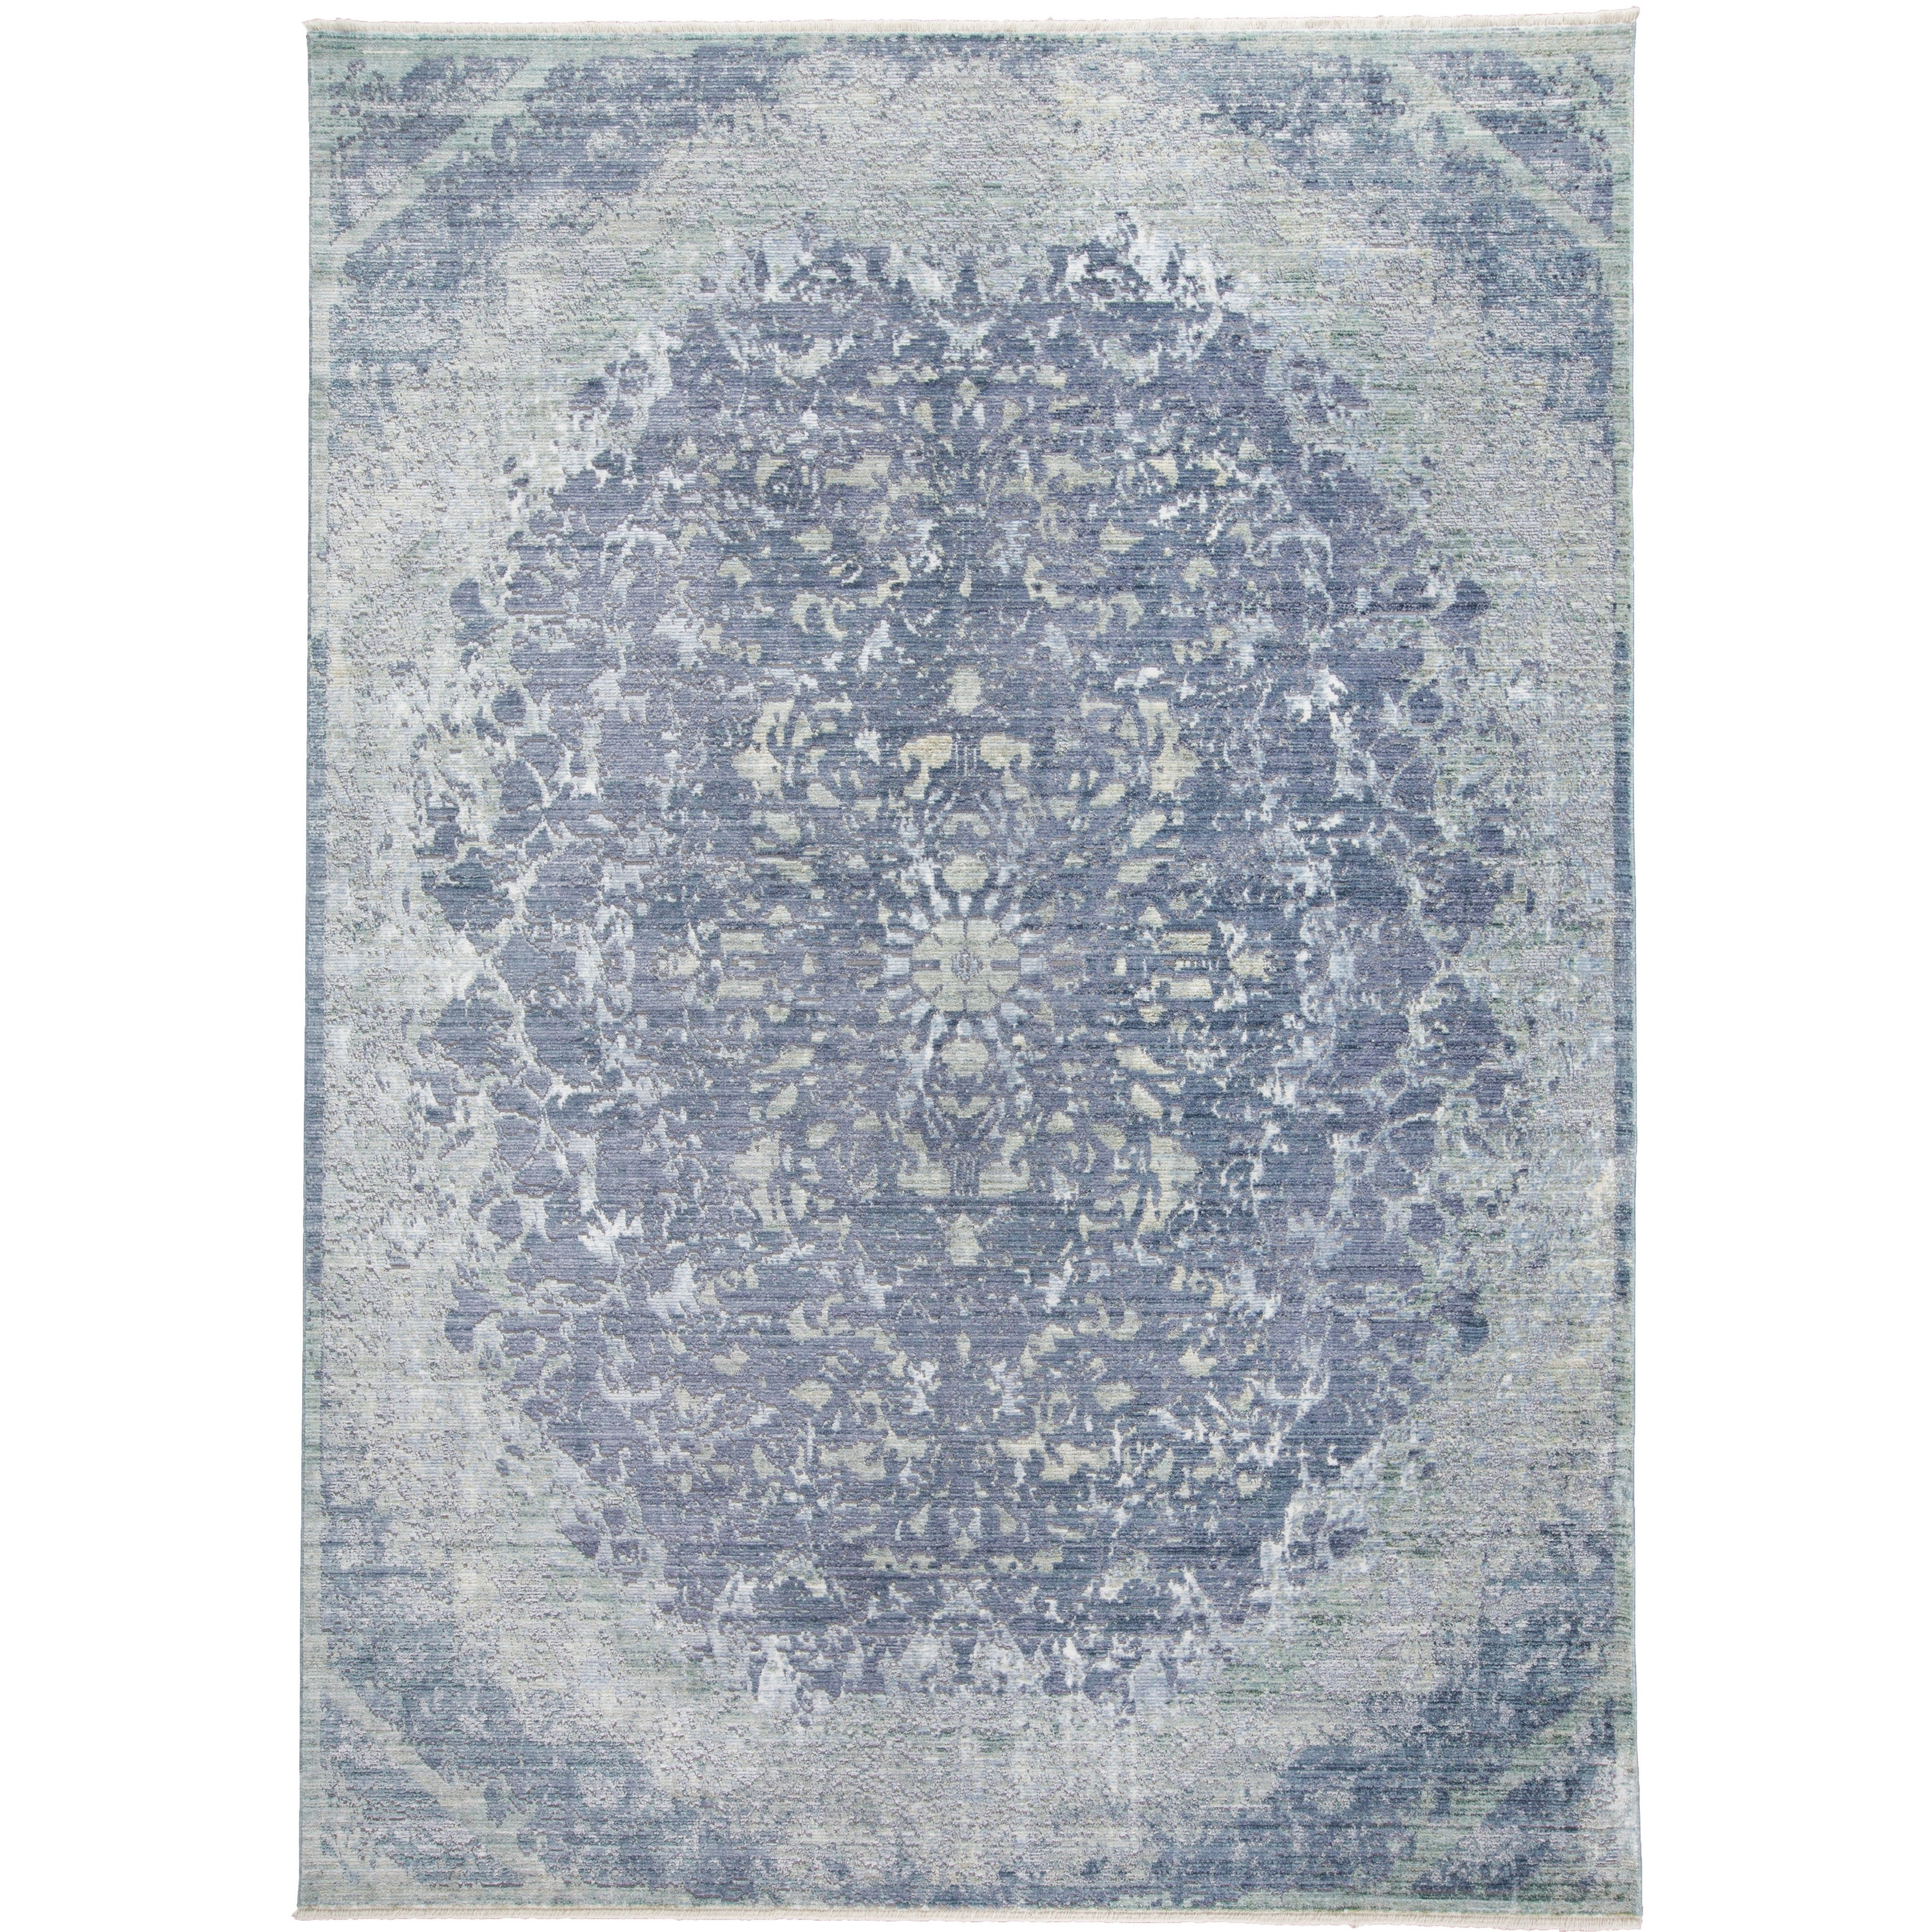 Grand Bazaar Tirza Blue/Turquoise Rug (4 x 6) - 4 x 6 (Blue/Turquoise - 4 x 6)